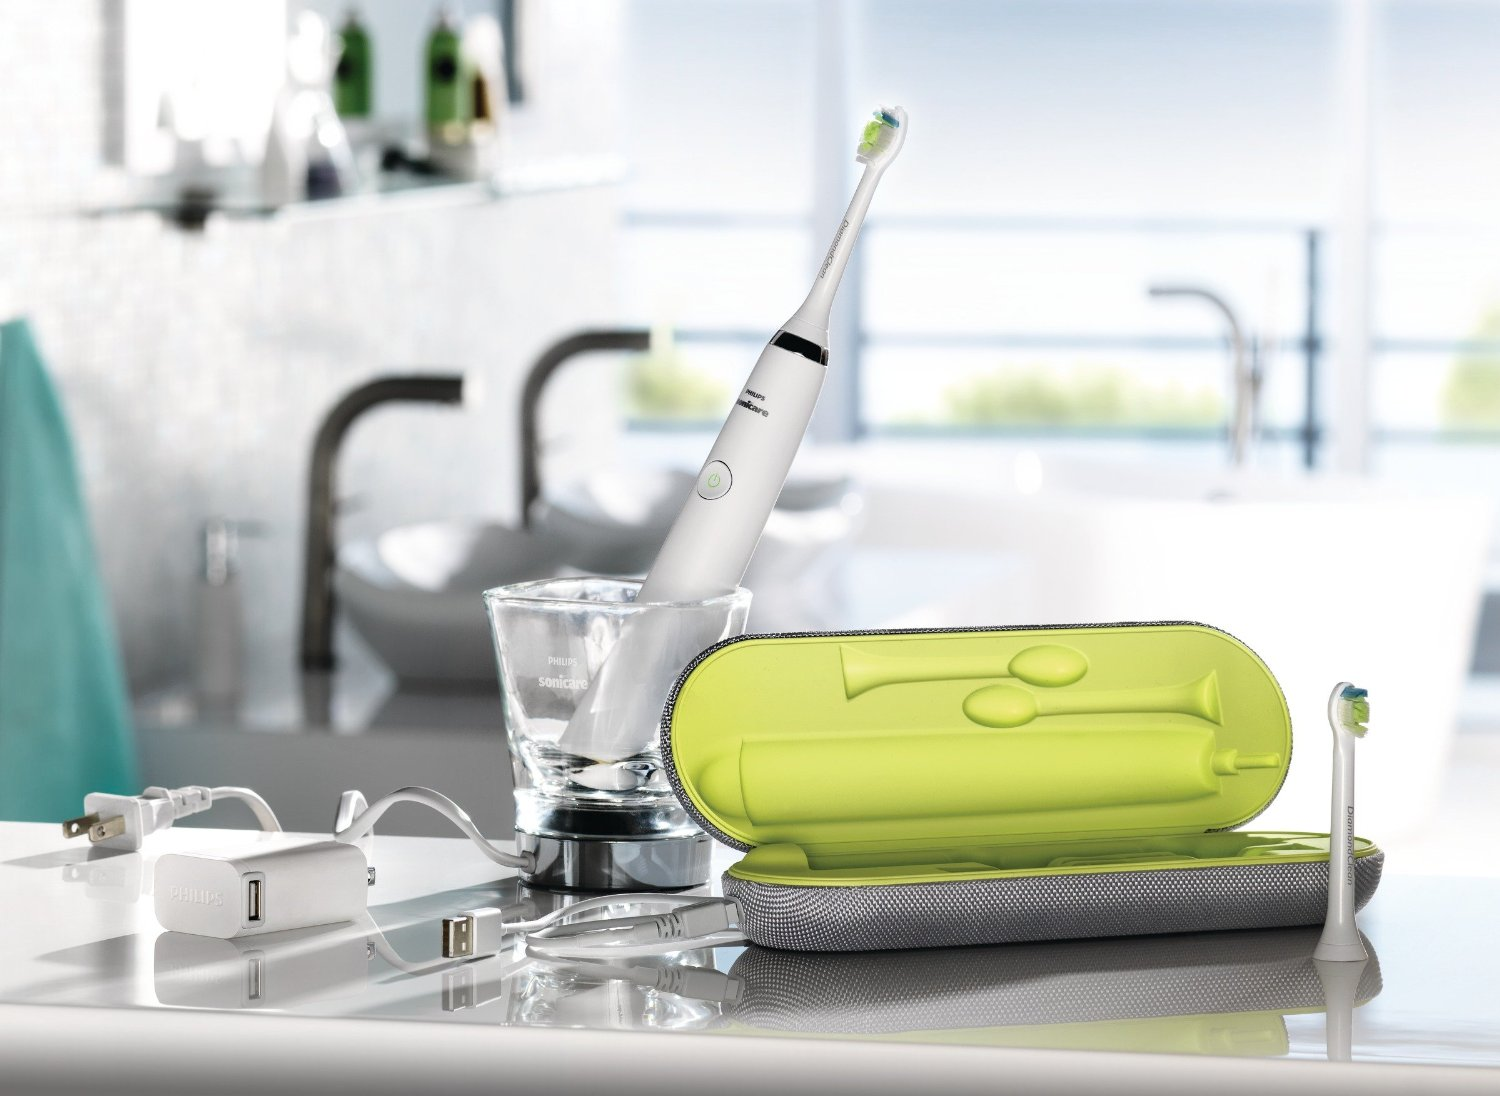 Philips Sonicare DiamondClean Electric Toothbrush Giveaway